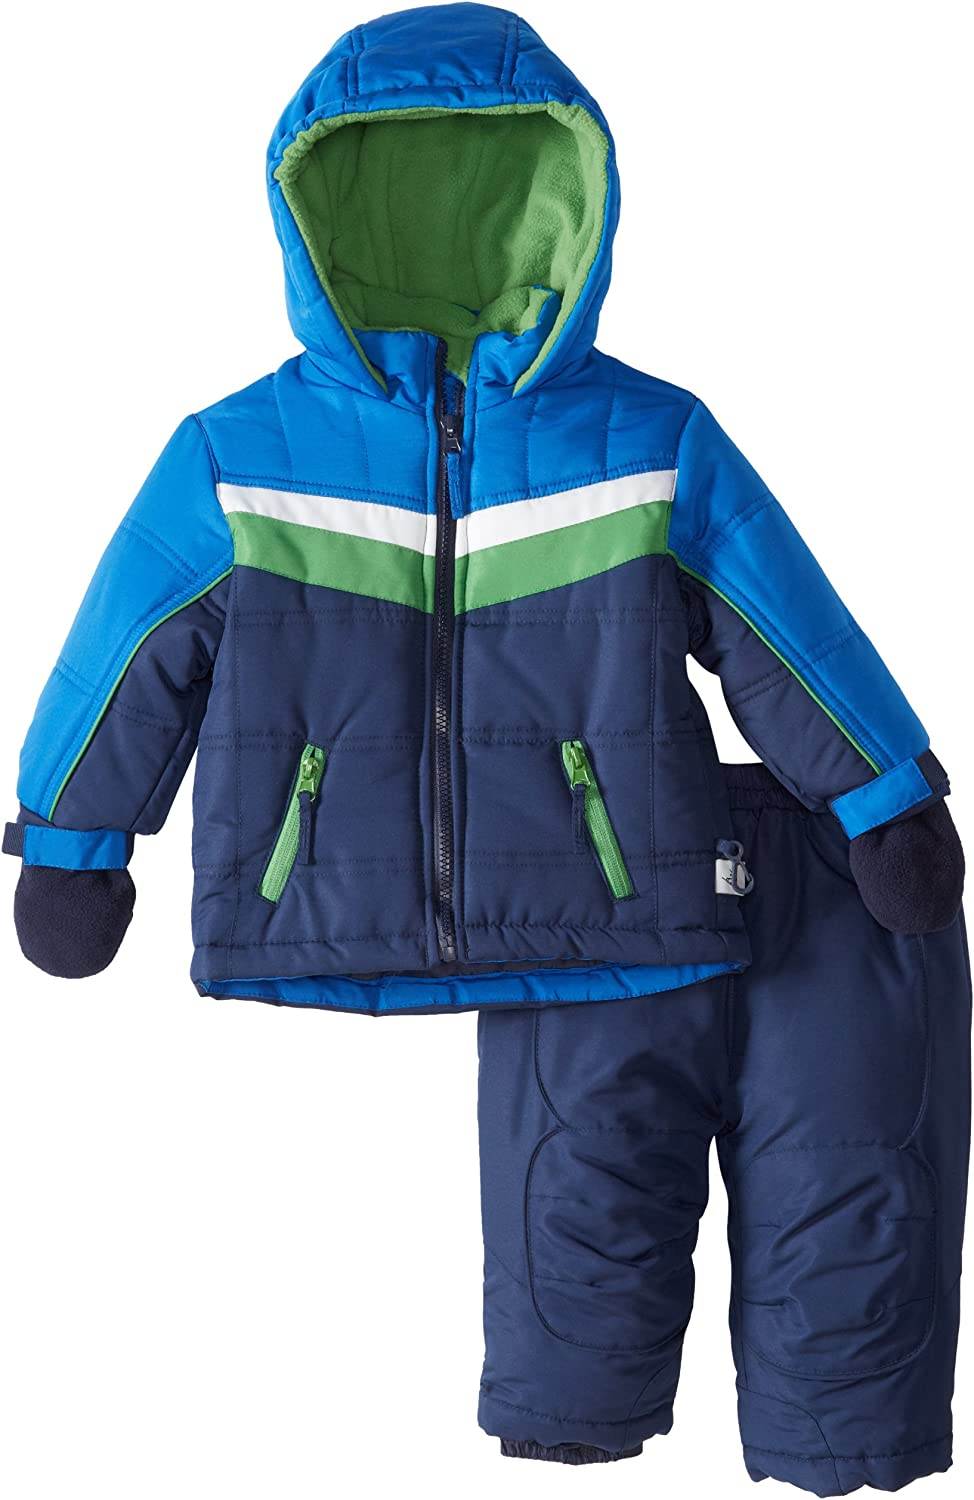 Rothschild Baby Max 80% OFF Boys' Snowsuit Colorblock Cheap